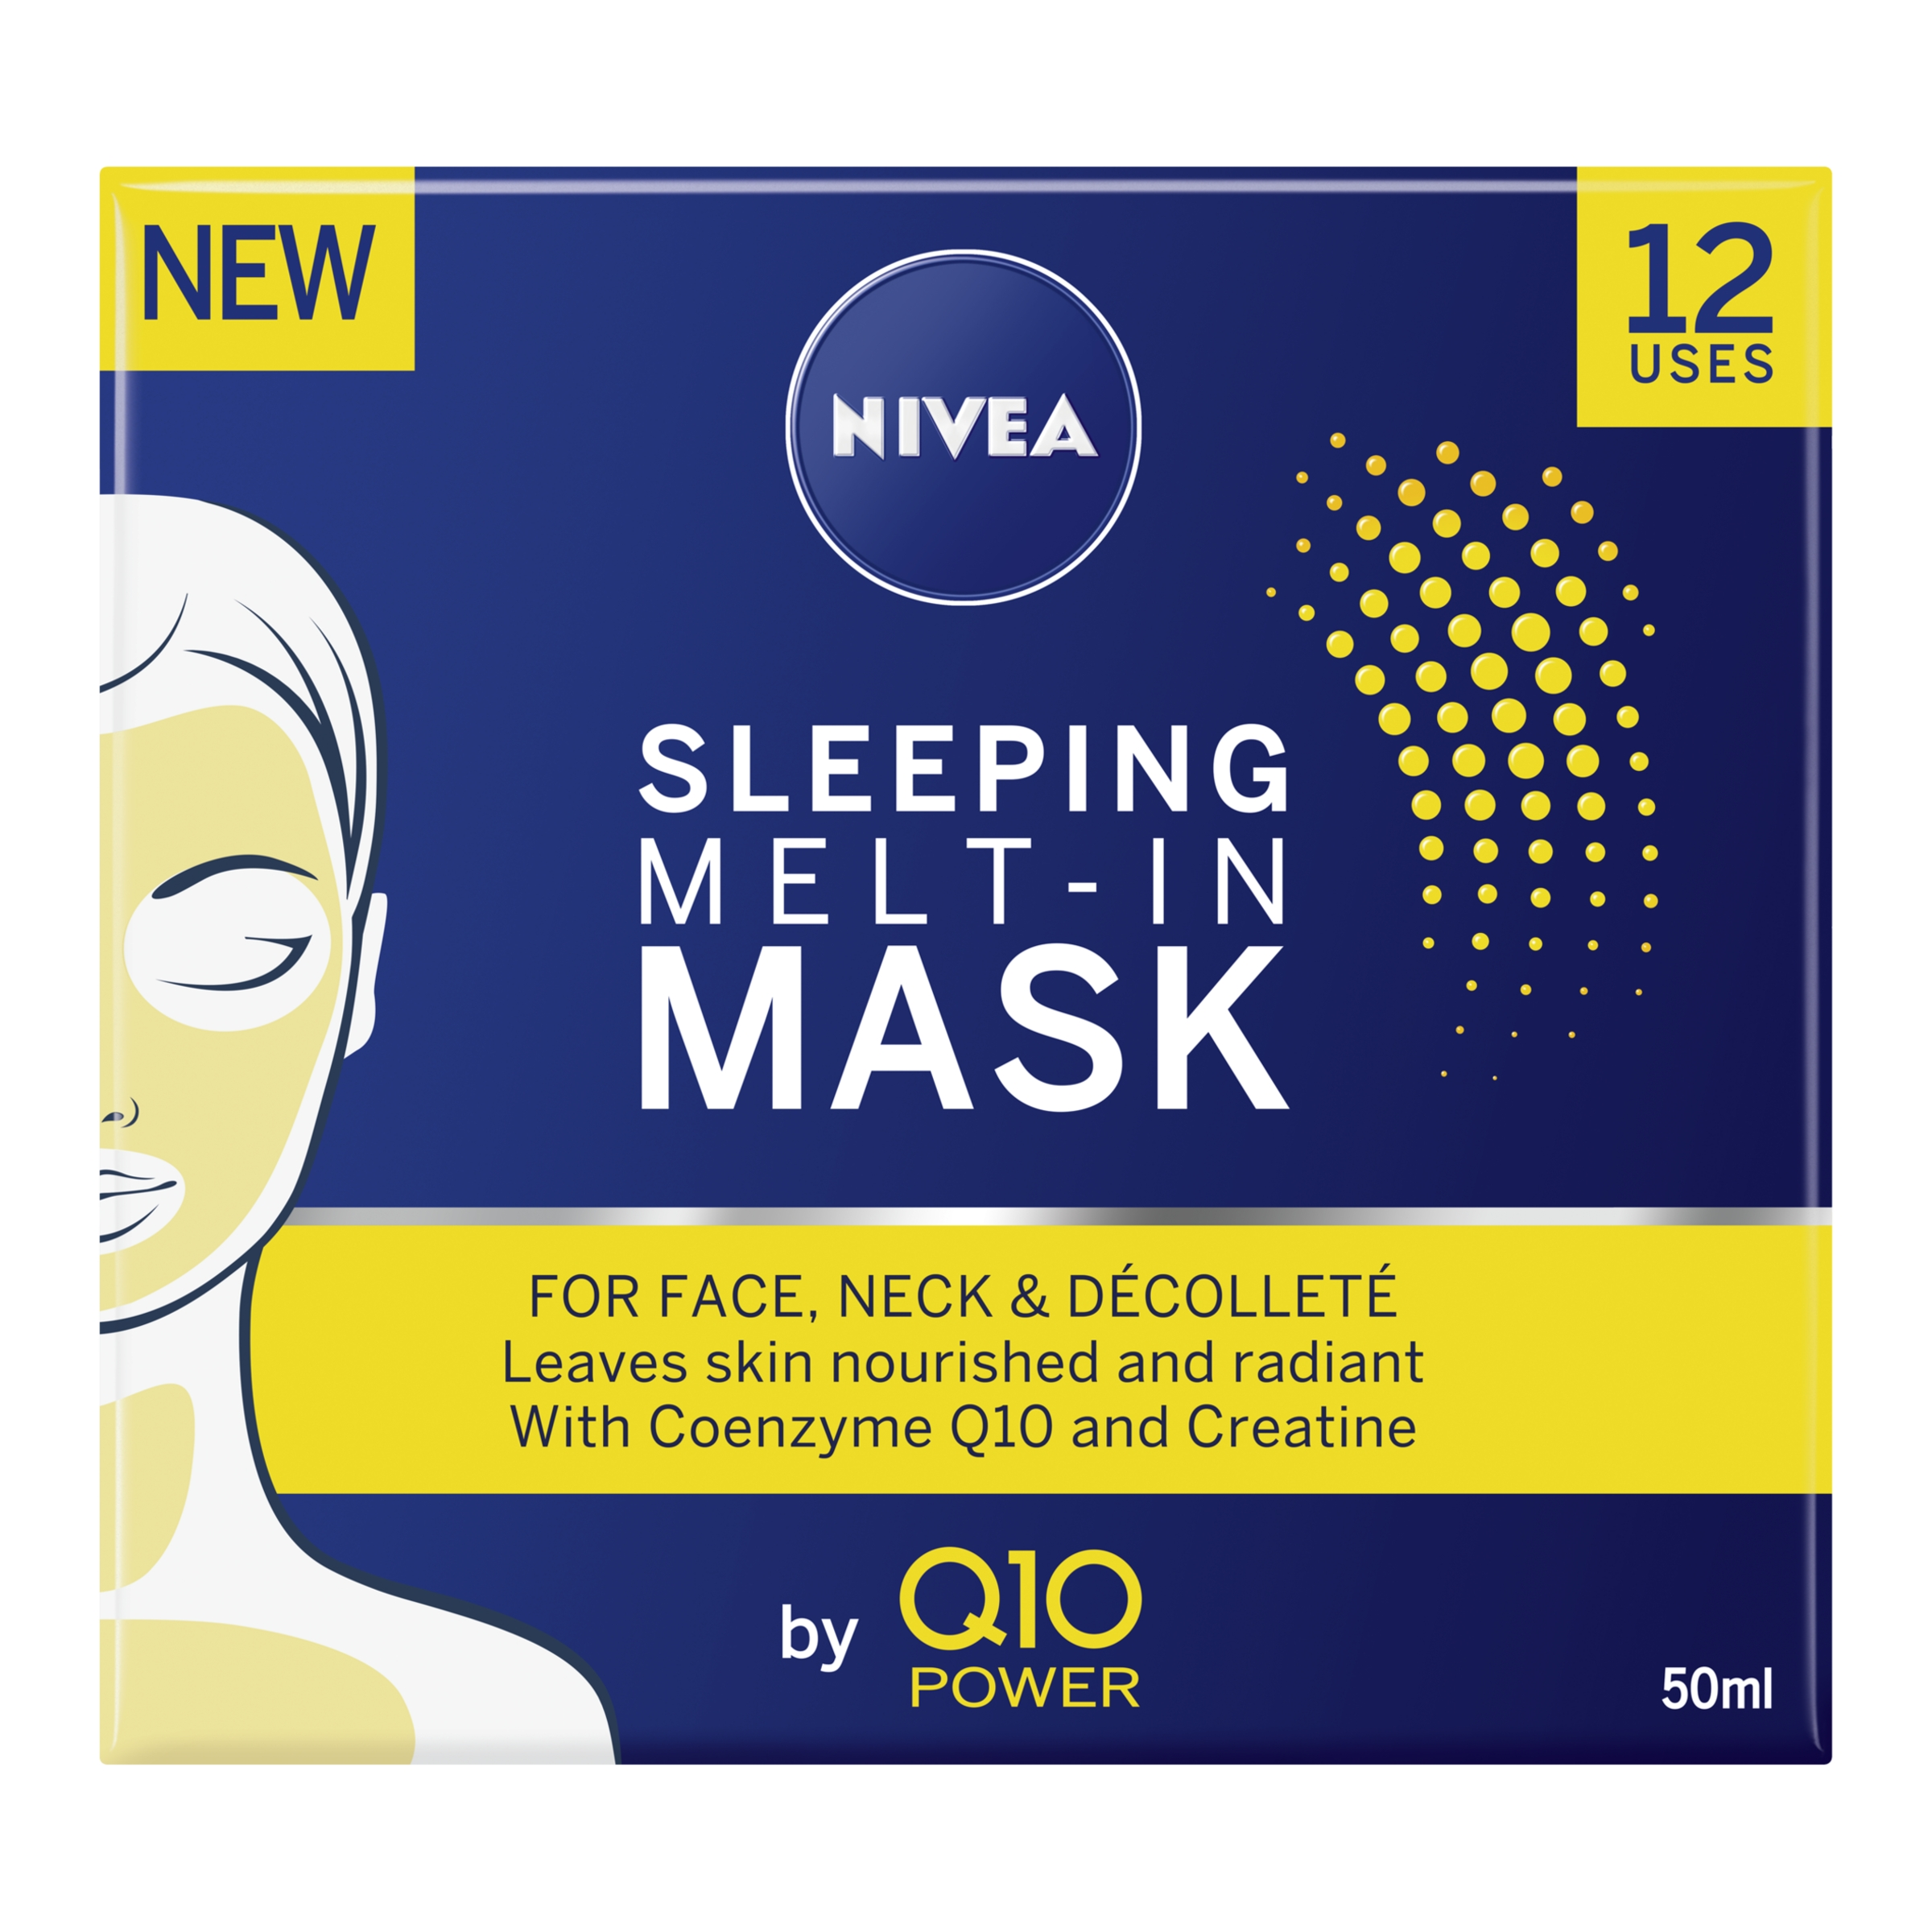 Q10 Power Sleeping Melt-In Mask.jpg